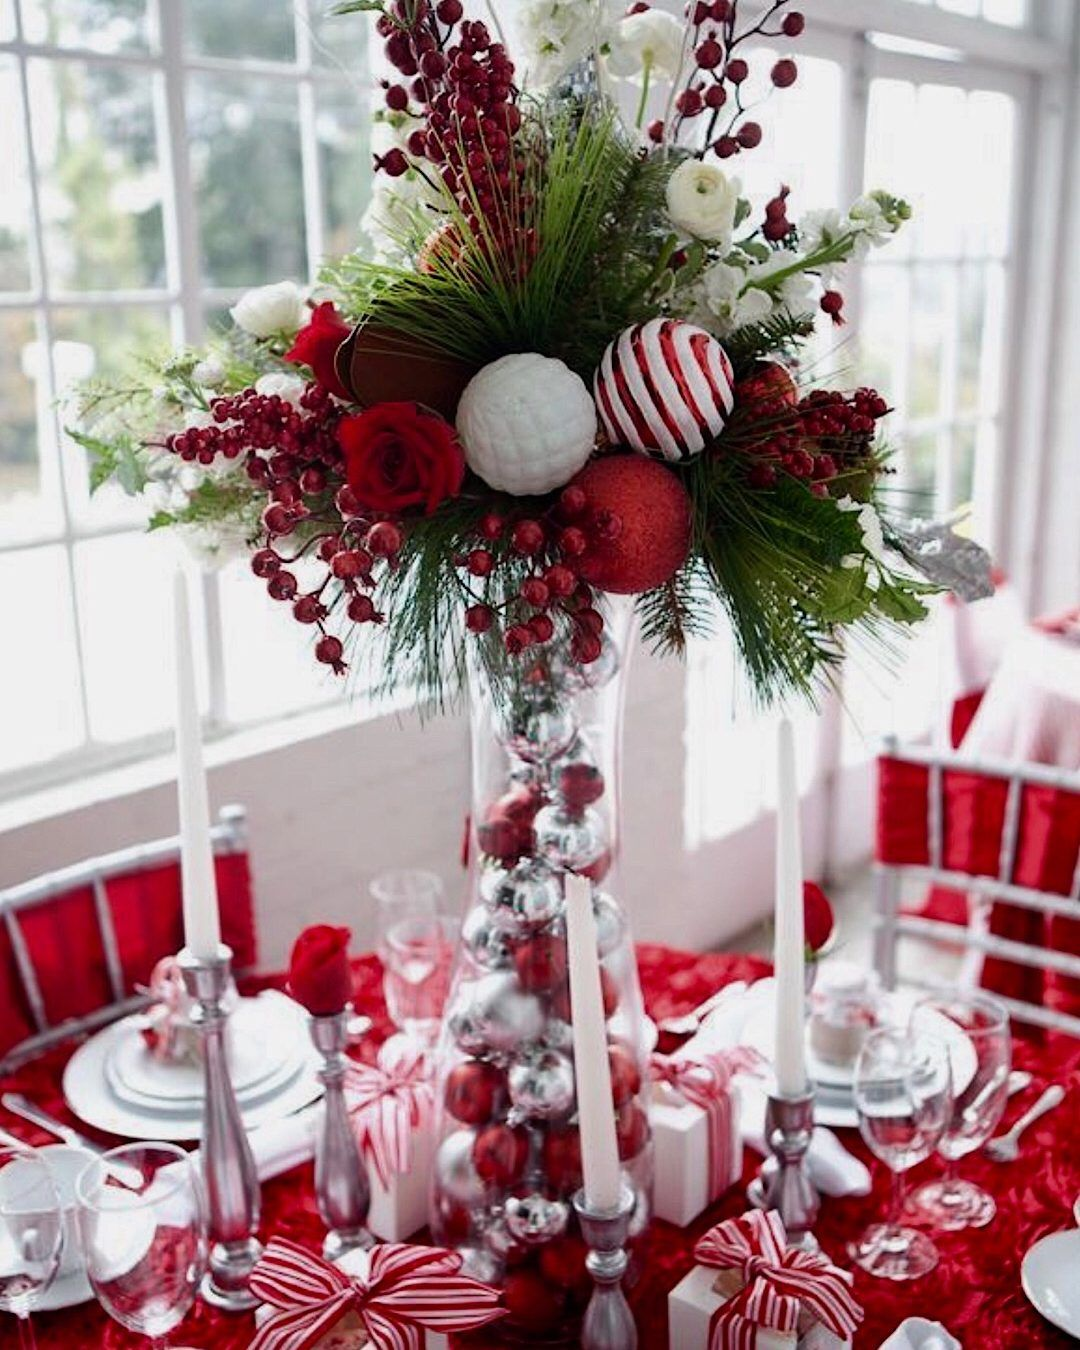 Xmas Table Centerpieces Ideas: 20 Exceptional Christmas Table Centerpiece & Decorating